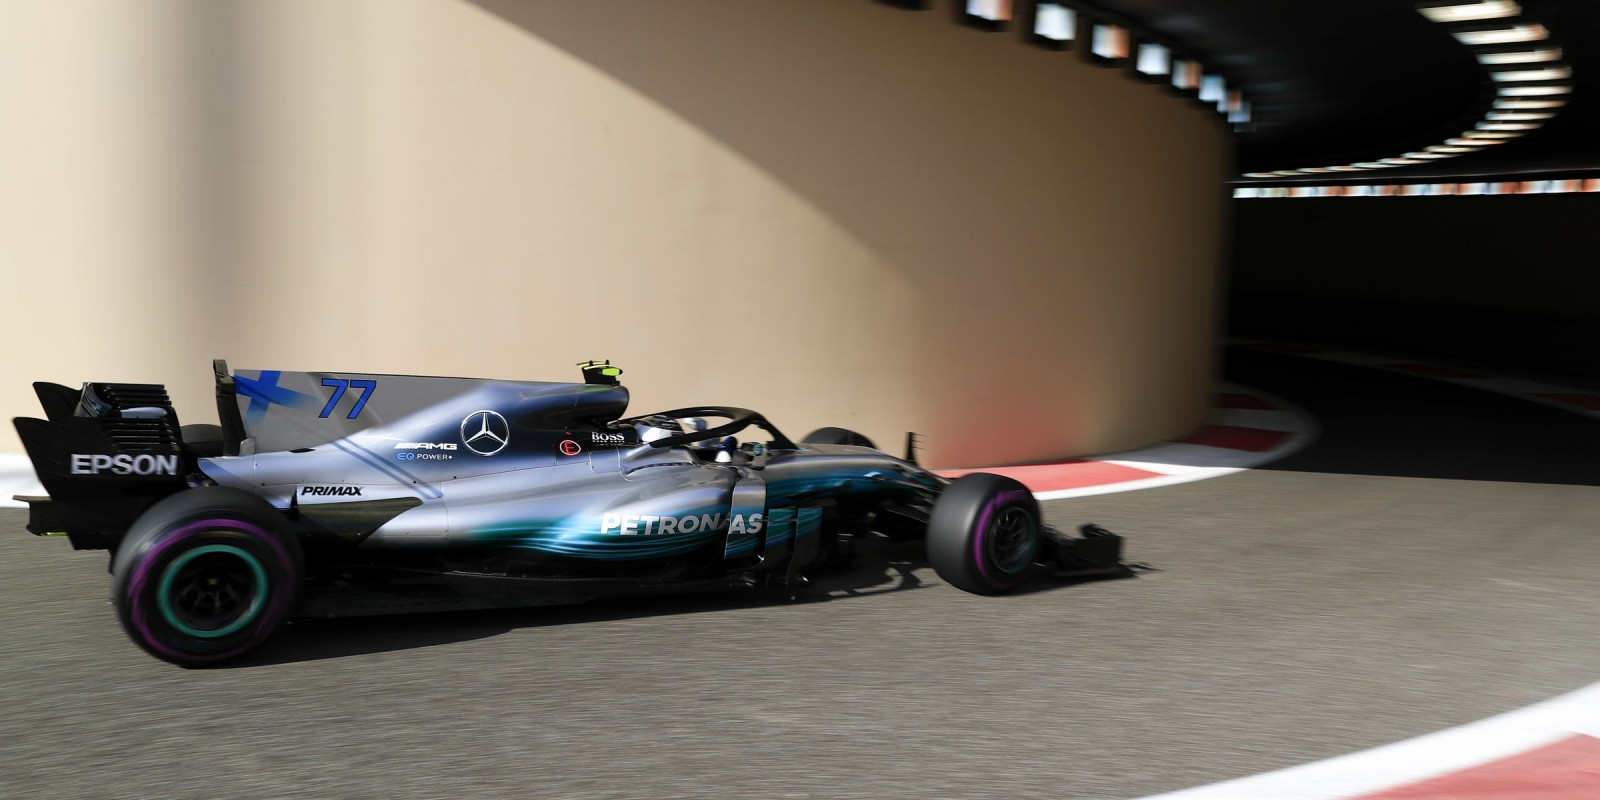 Saturday images from the 2017 Abu Dhabi Grand Prix